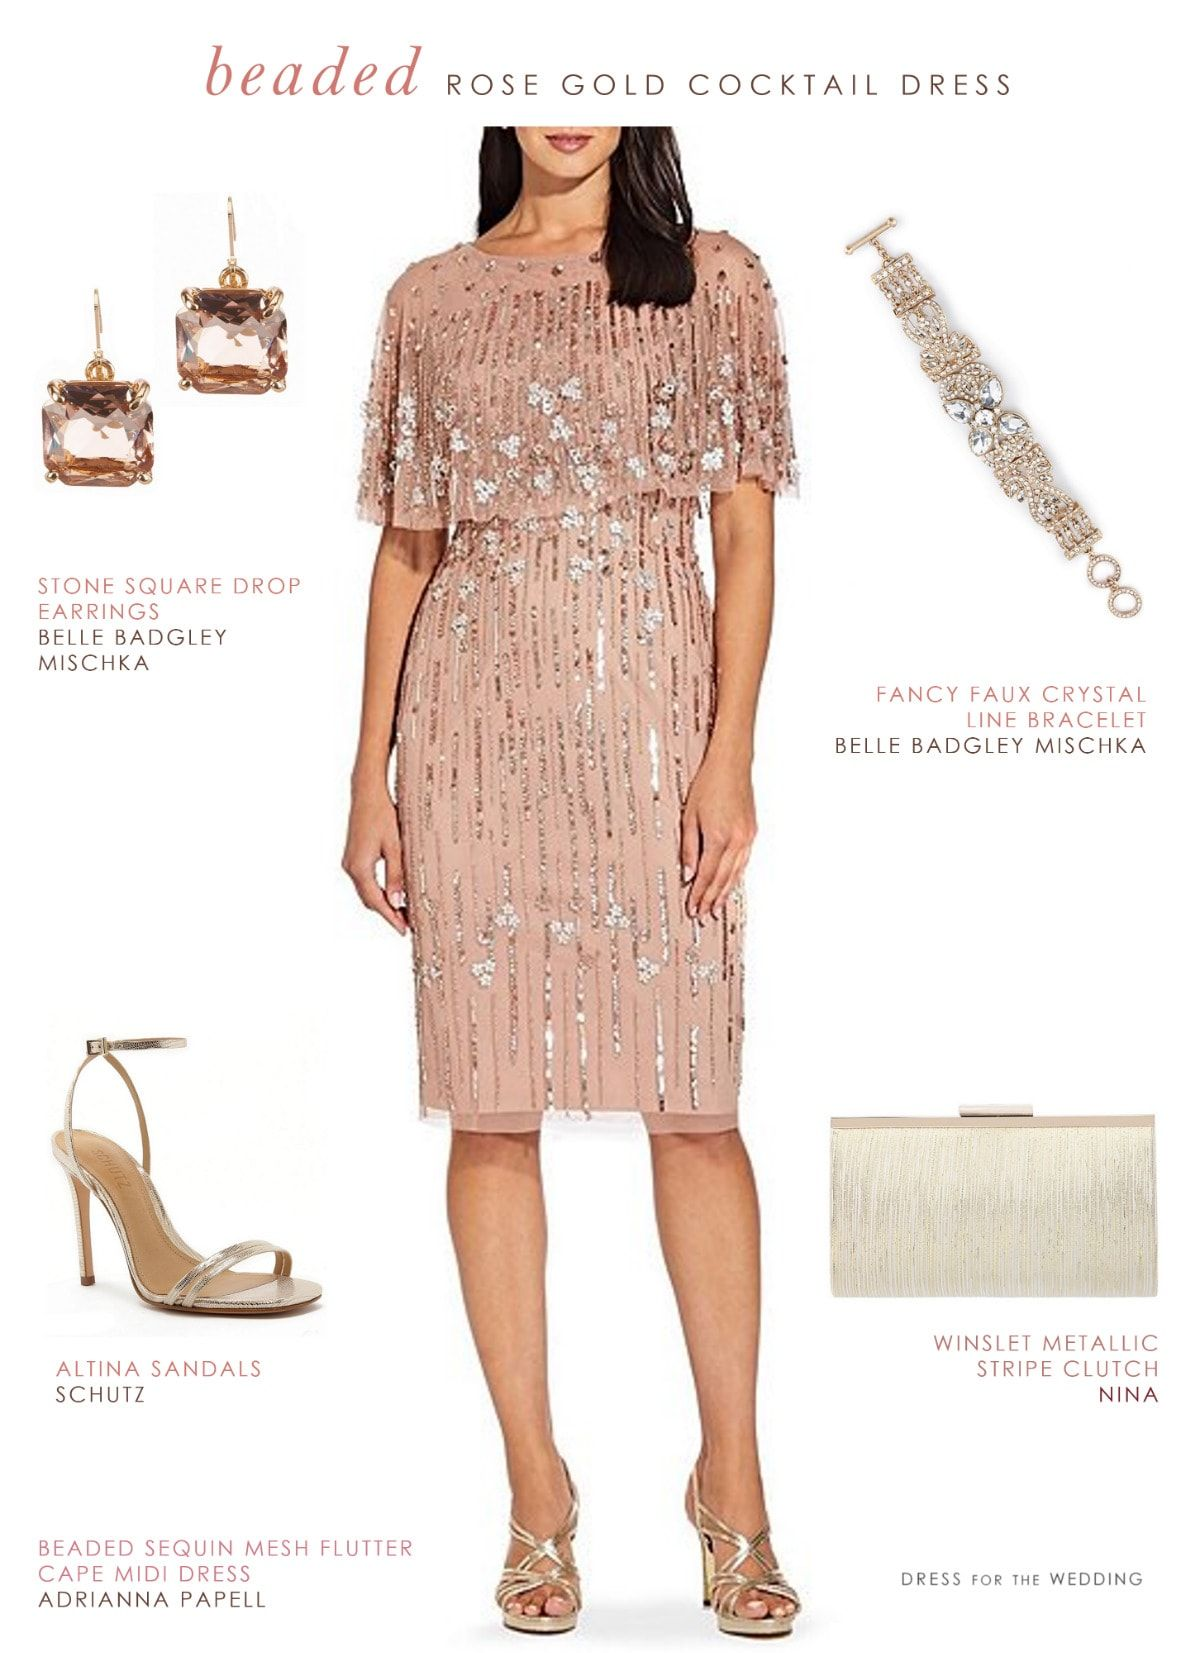 Rose Gold Beaded Cocktail Dress Dress For The Wedding Rose Gold Cocktail Dress Beaded Cocktail Dress Cocktail Dress Wedding